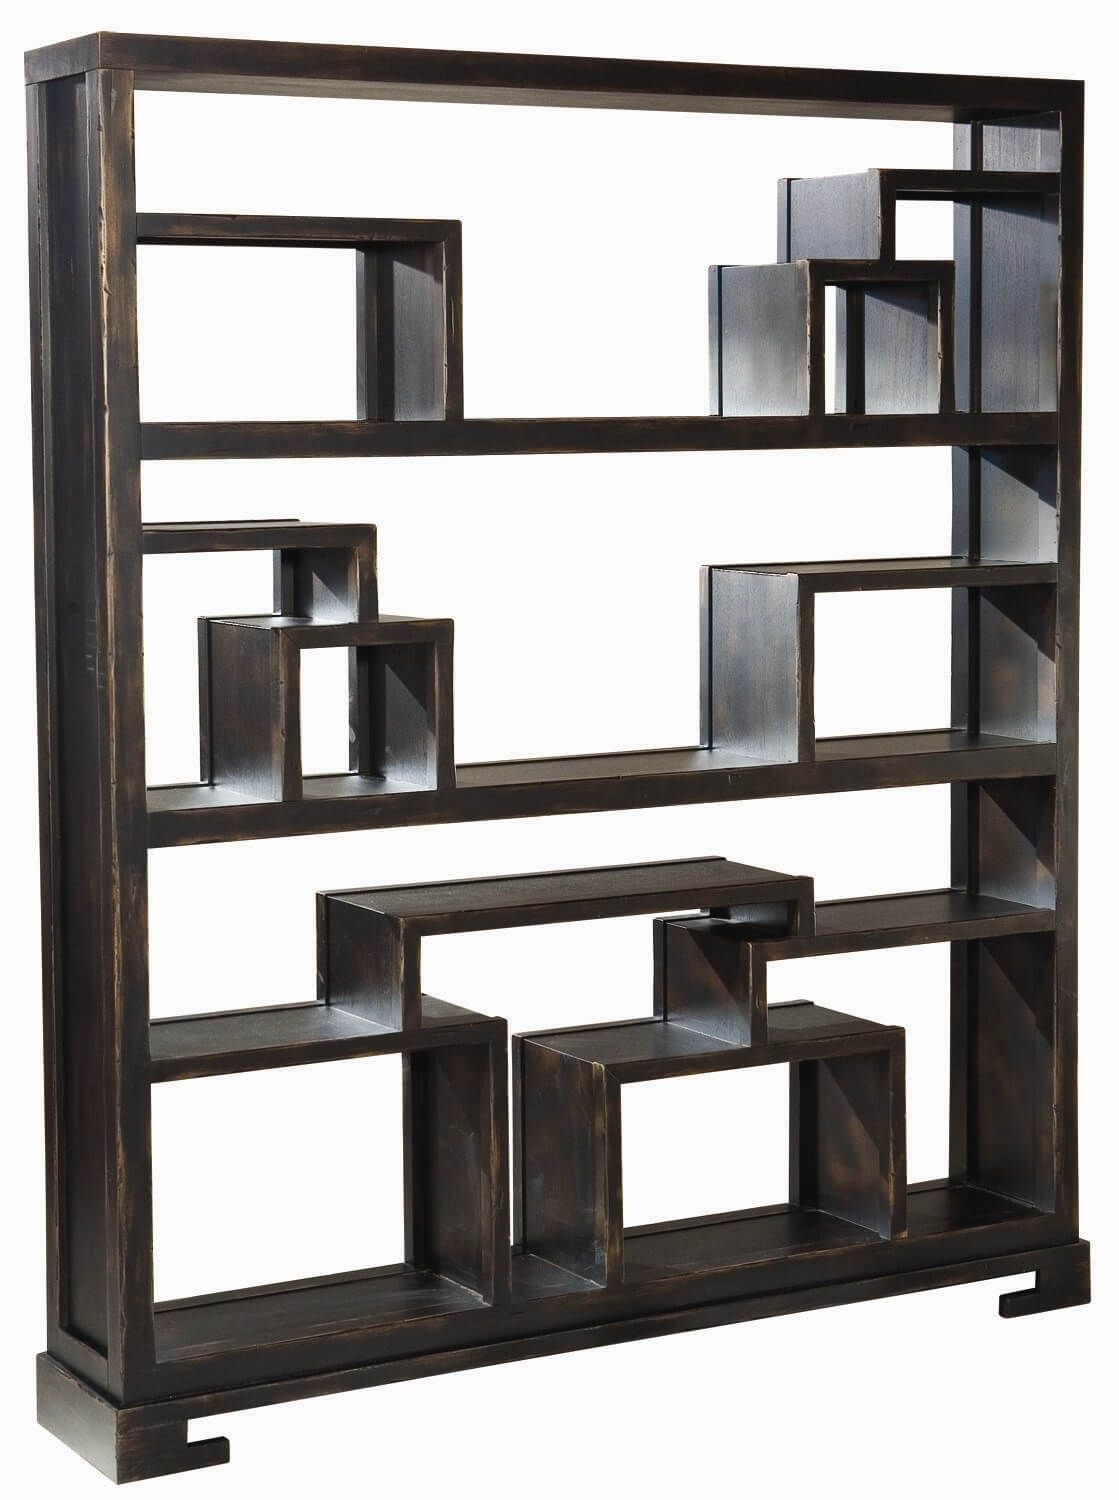 17 Types Of Cube Shelves, Bookcases & Storage Options | Home